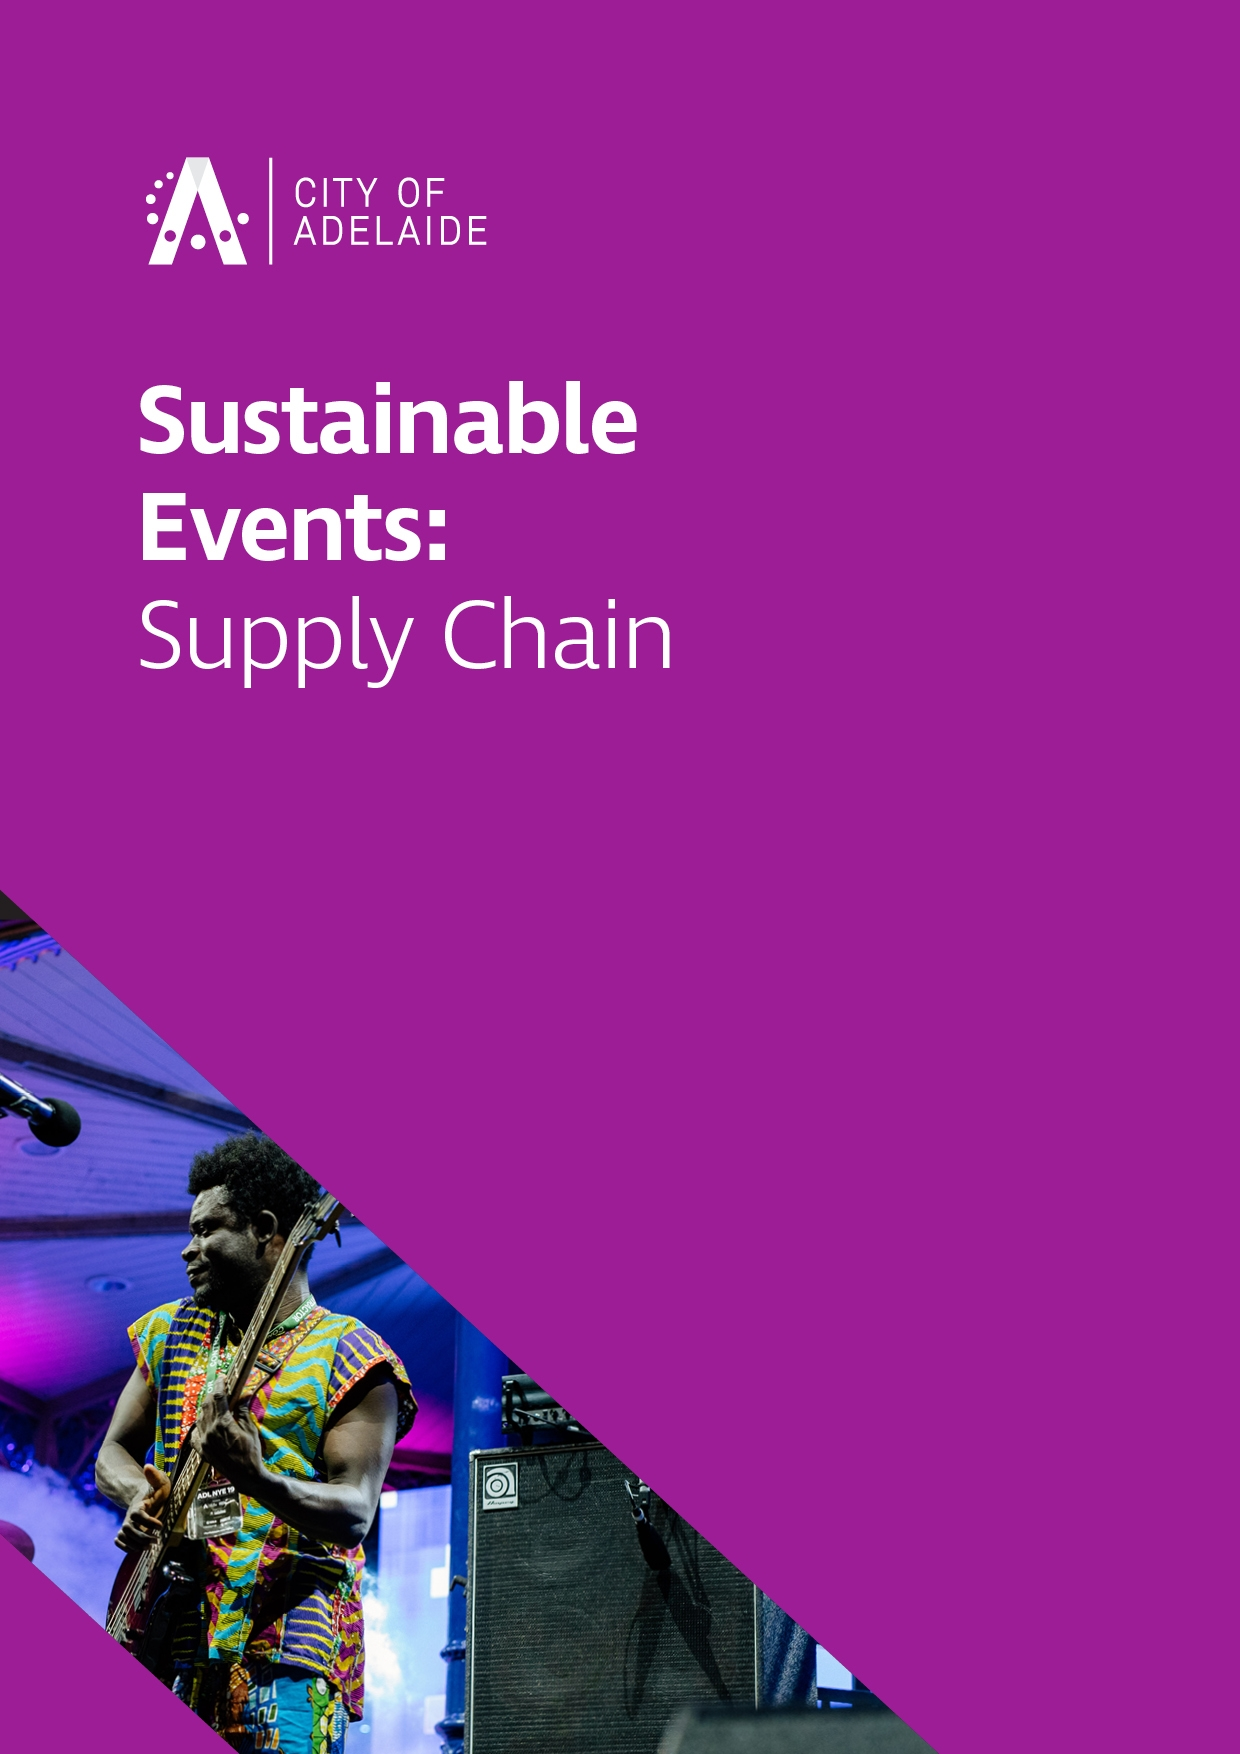 Thumbnail sustainable events checklists supply chain